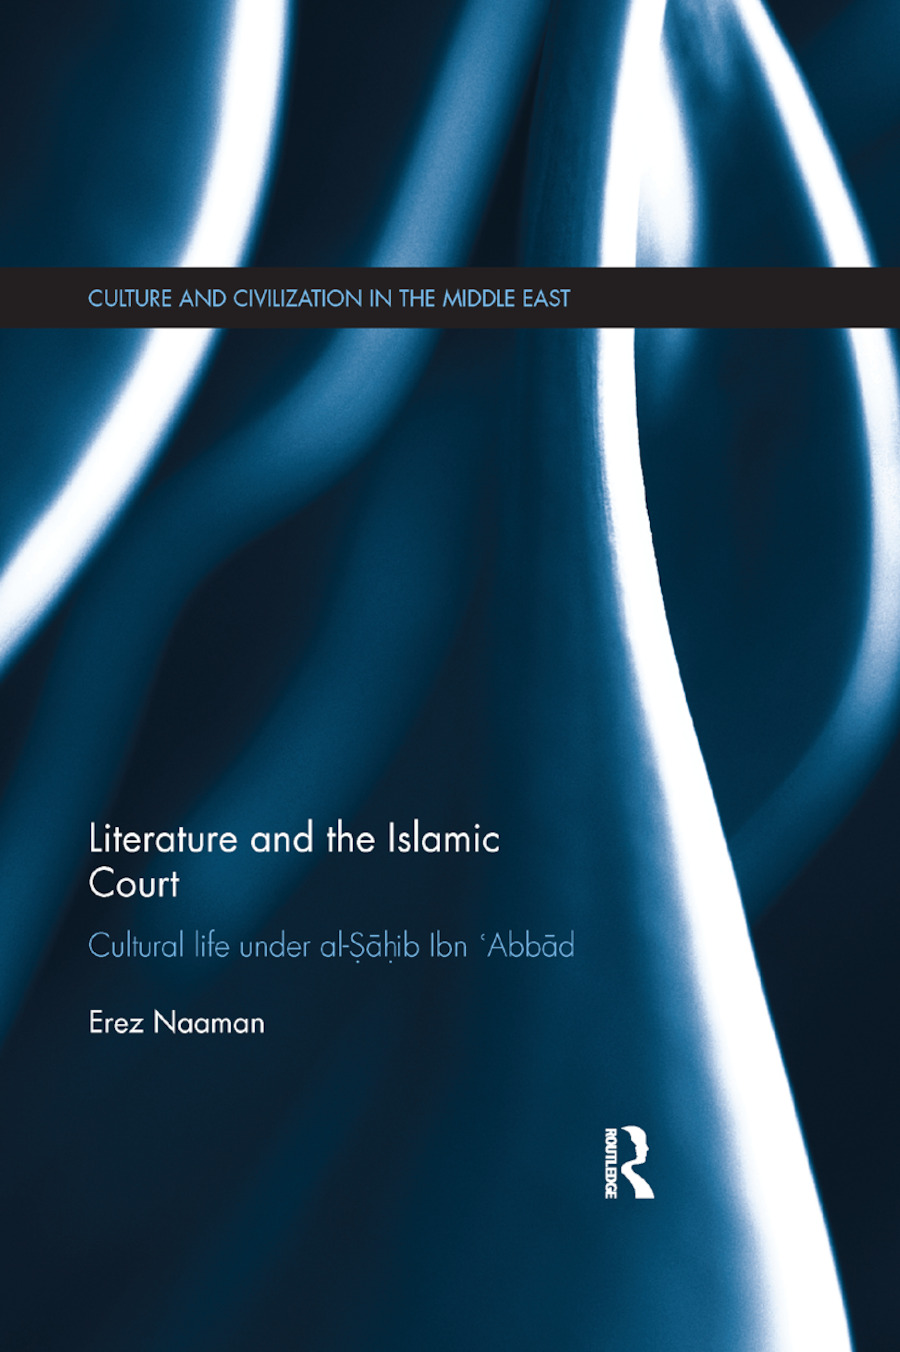 Literature and the Islamic Court: Cultural life under al-Sahib Ibn 'Abbad book cover